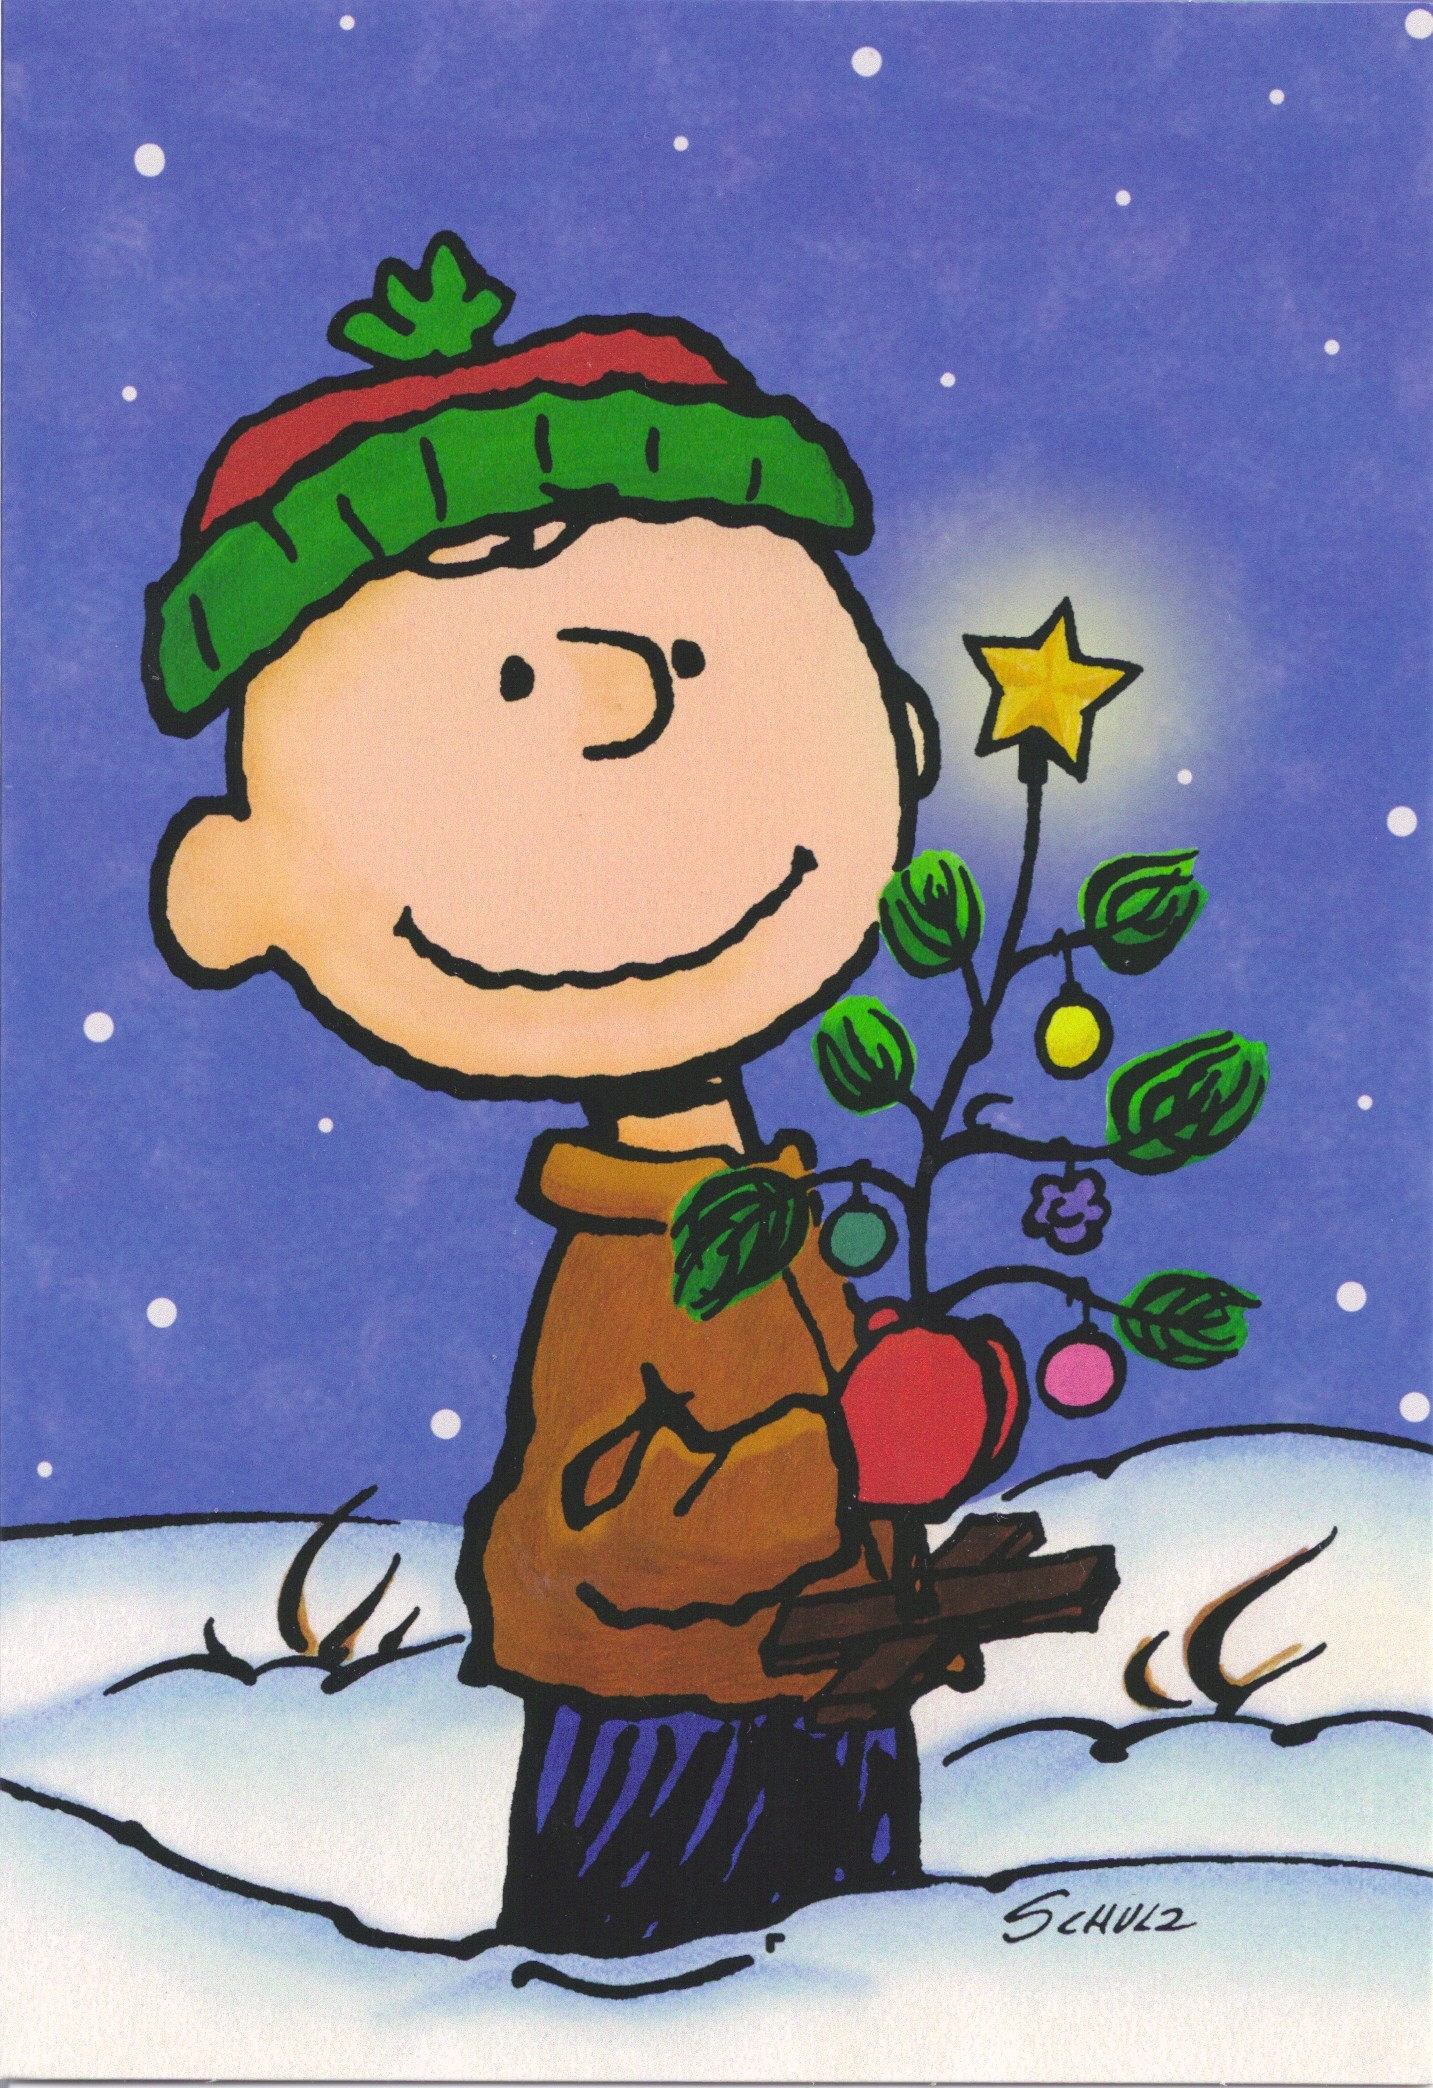 Charlie Brown Christmas Tree Quote.Charlie Brown Christmas Tree Wallpaper 50 Images